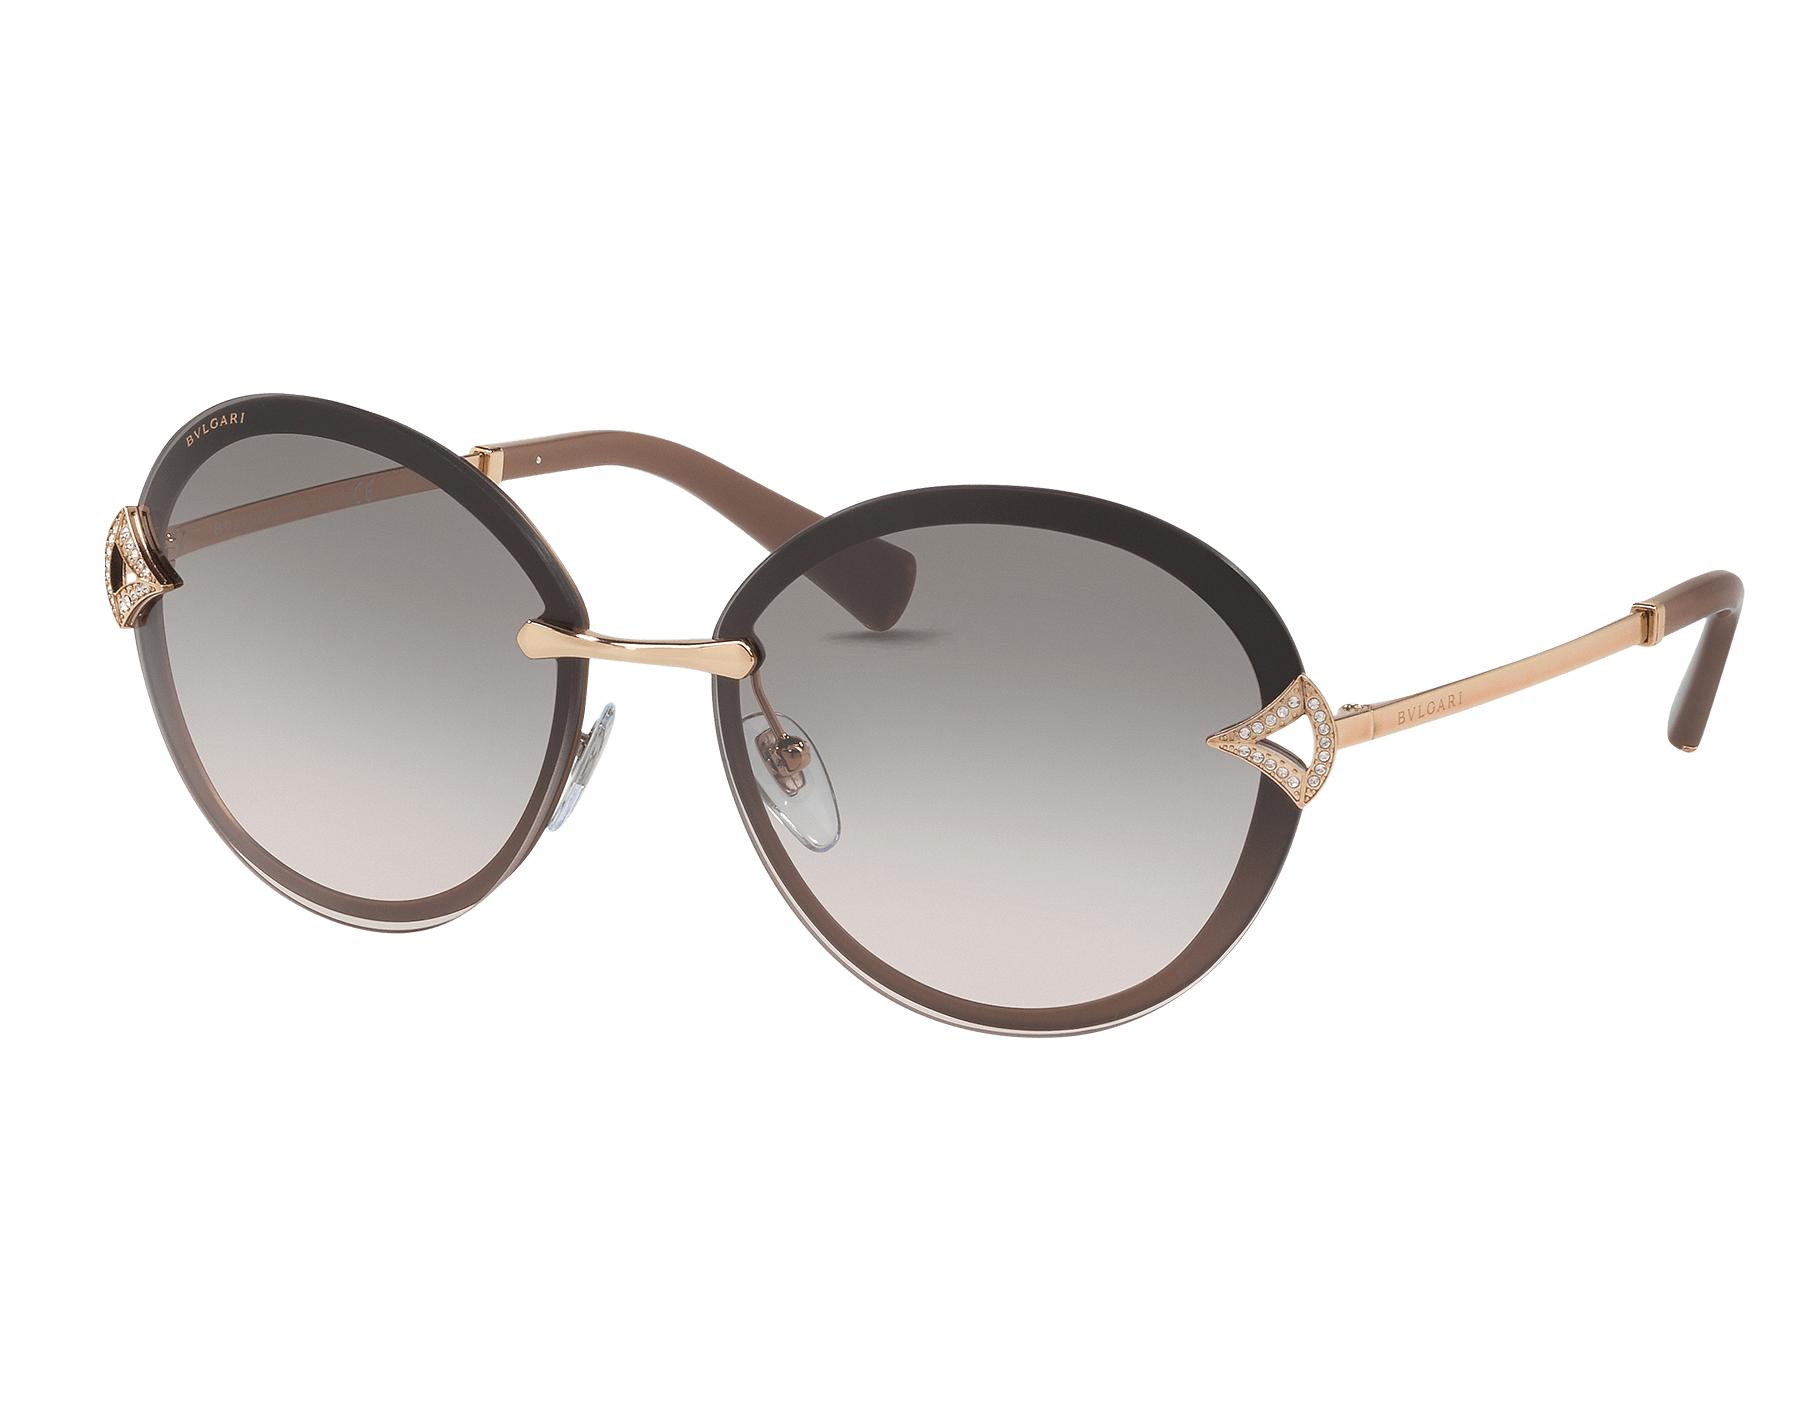 DIVAS' DREAM oval metal sunglasses. 903396 image 1